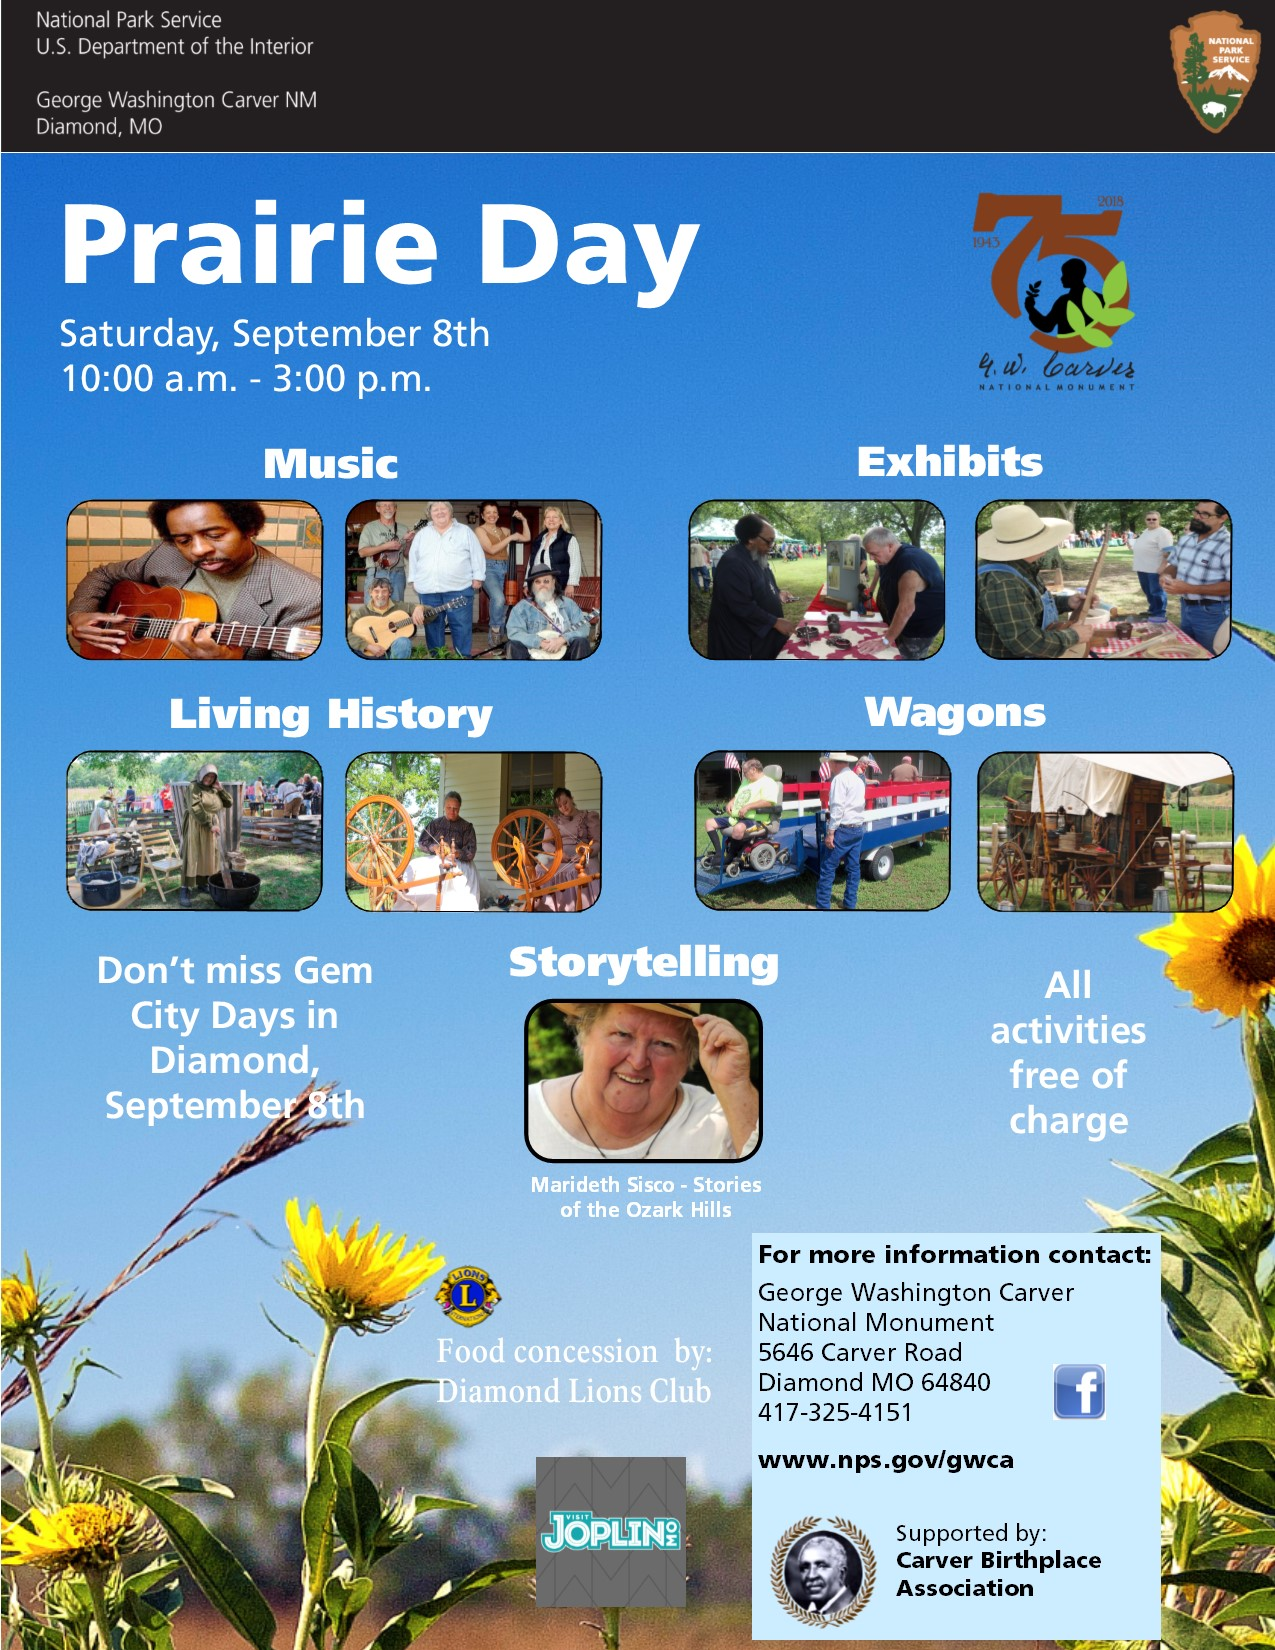 The photograph is for an upcoming special event called Prairie Day. The photo includes images of music performers, storyteller, historic cultural demonstrators, exhibitors and wagon rides. There is also information text about the event.